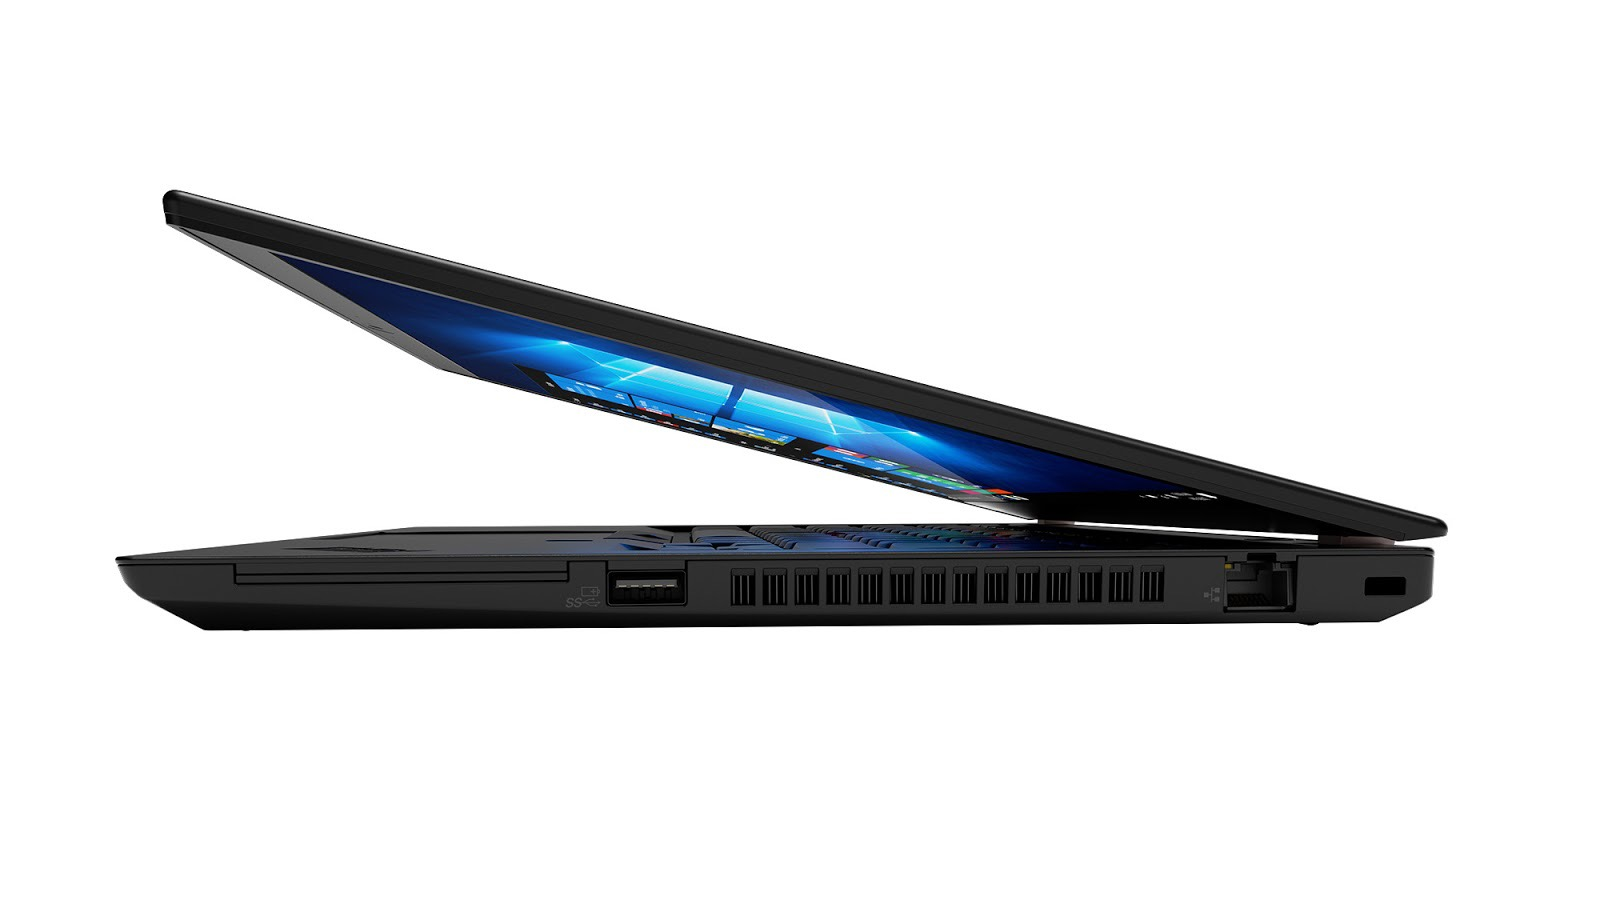 Фото 1. Ноутбук Lenovo ThinkPad T14 Gen 1 Black (20S00011RT)